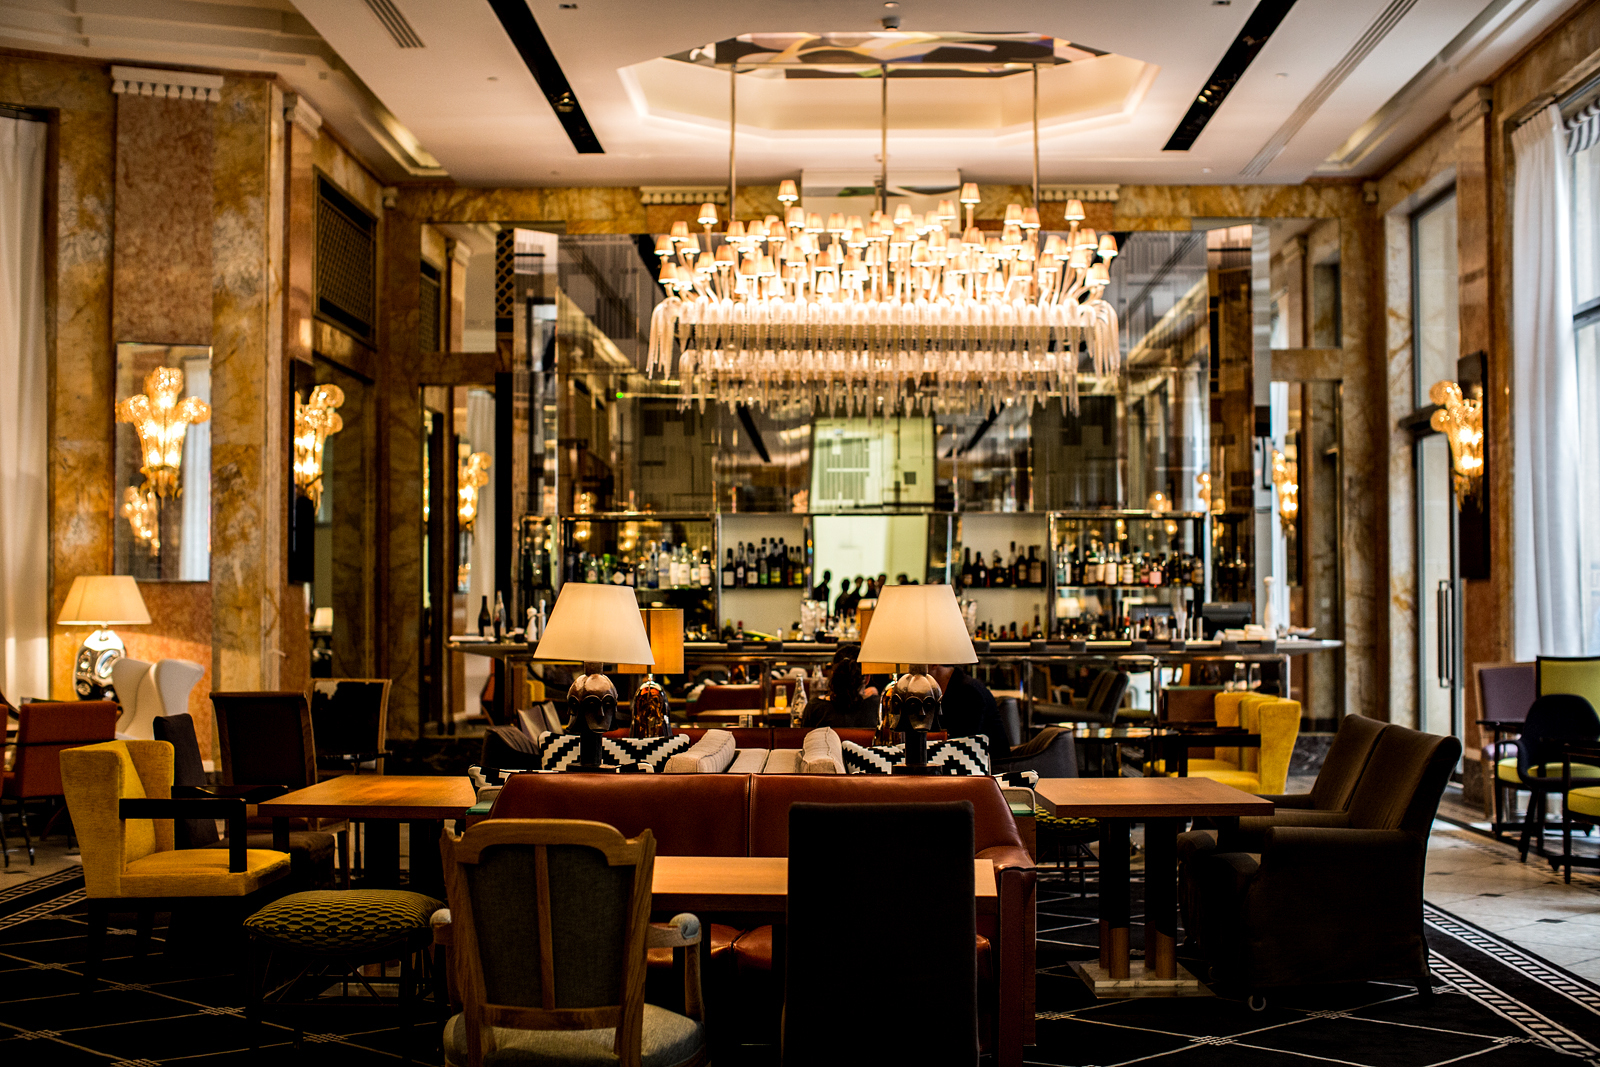 Particular Starwood Hotels Resorts Reopens An Art Deco Prince De Aluxury Collection Paris Following A Two Year Restoration Businesswire Starwood Hotels Resorts Reopens An Art Deco Prince De Galles houzz-03 Art Deco Bar